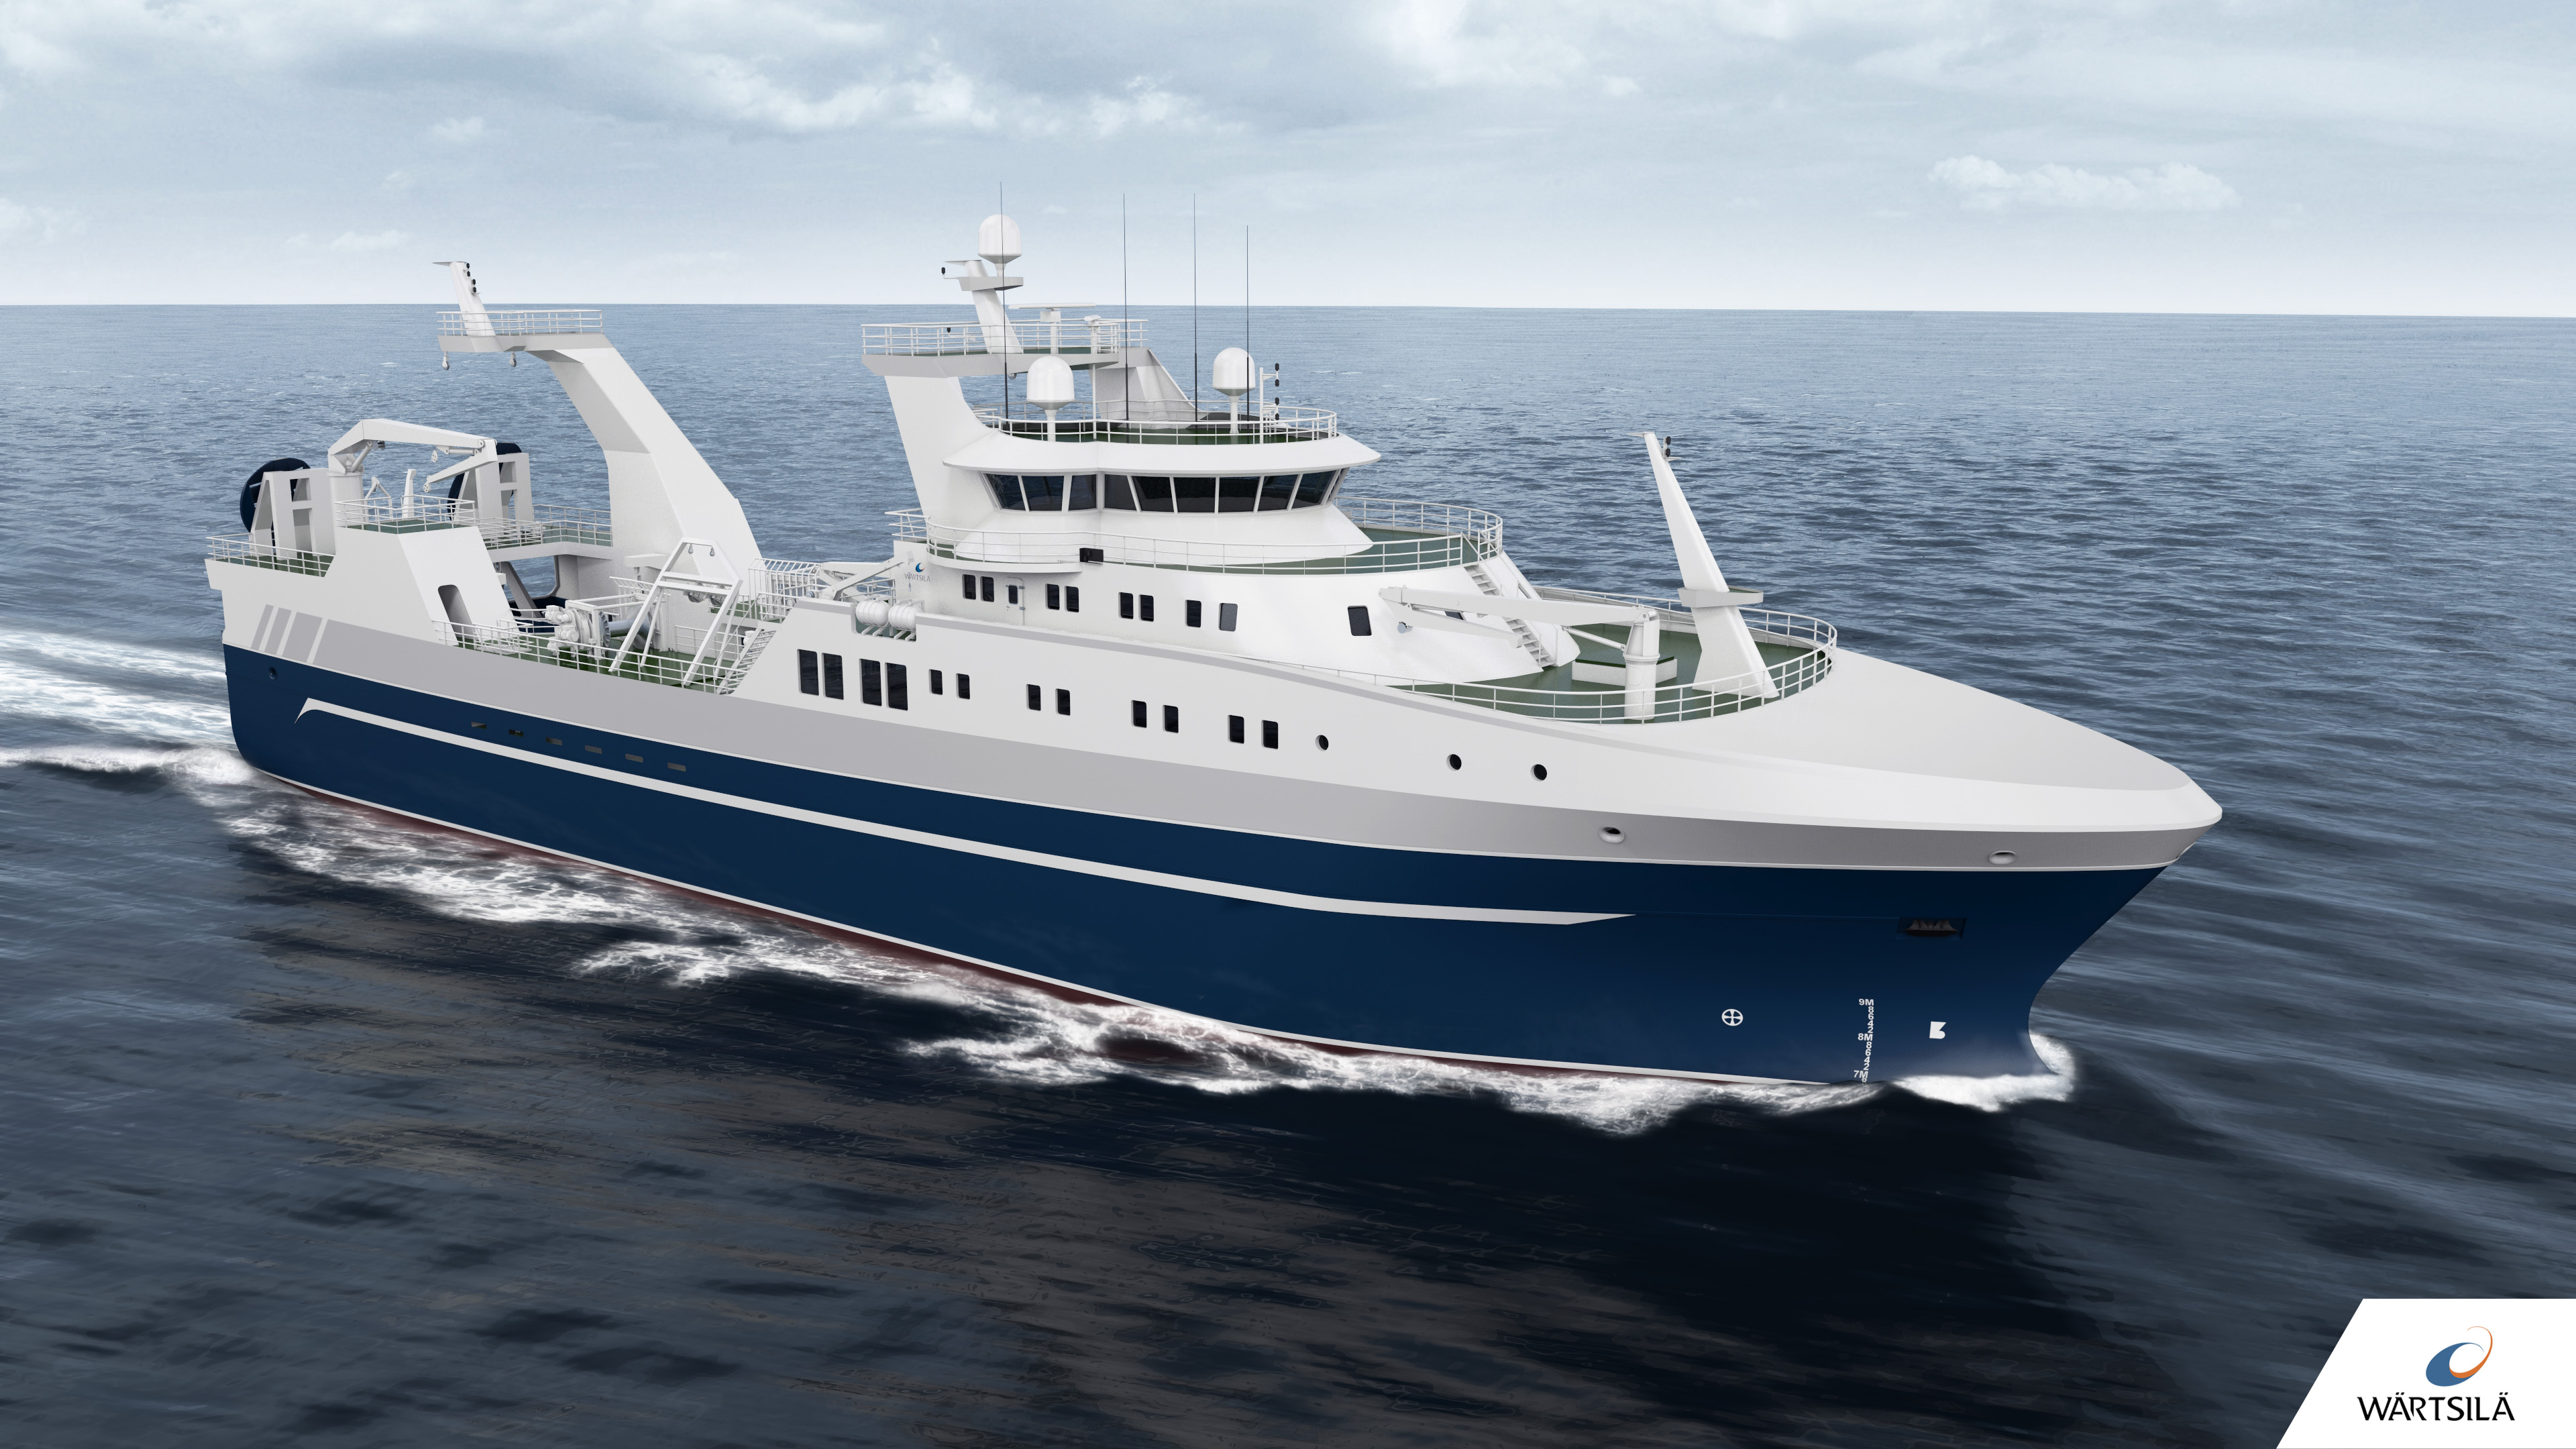 Caption: The new optimised stern trawler designed by Wärtsilä will reduce fuel consumption and notably increase overall vessel efficiency compared to currently available designs.